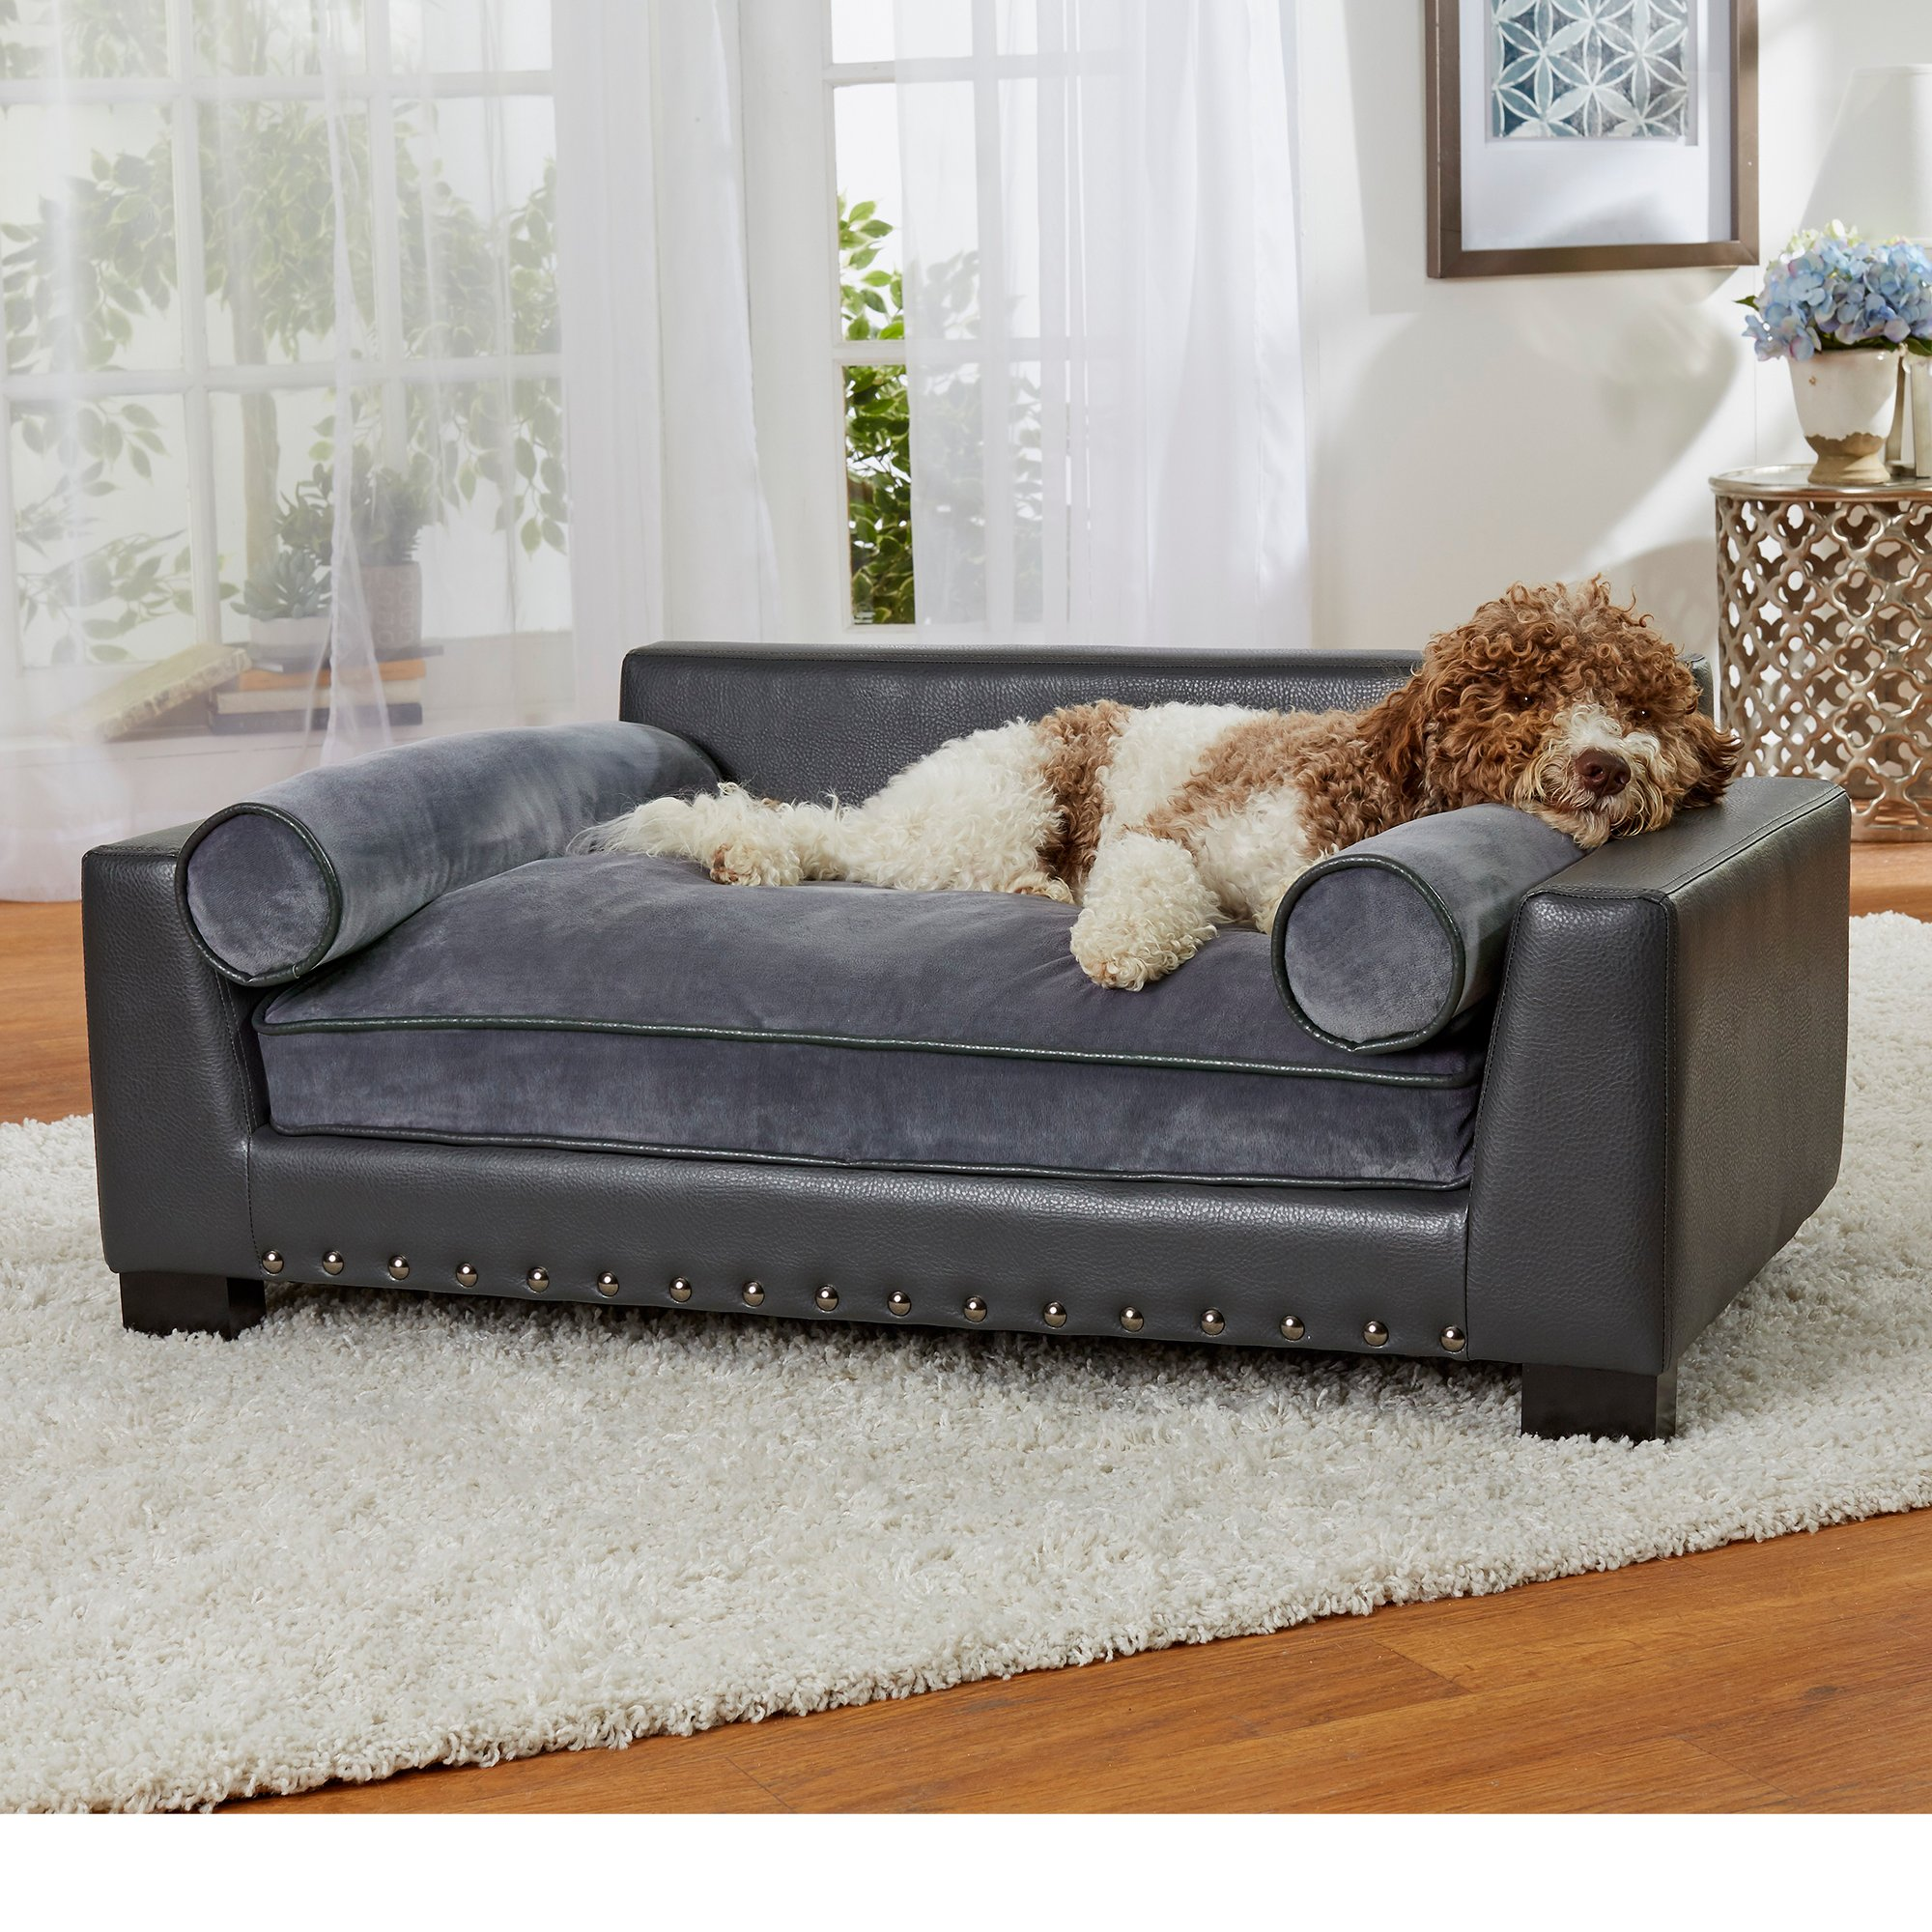 Enchanted Home Pet Skylar Dark Grey Sofa for Dog | Petco